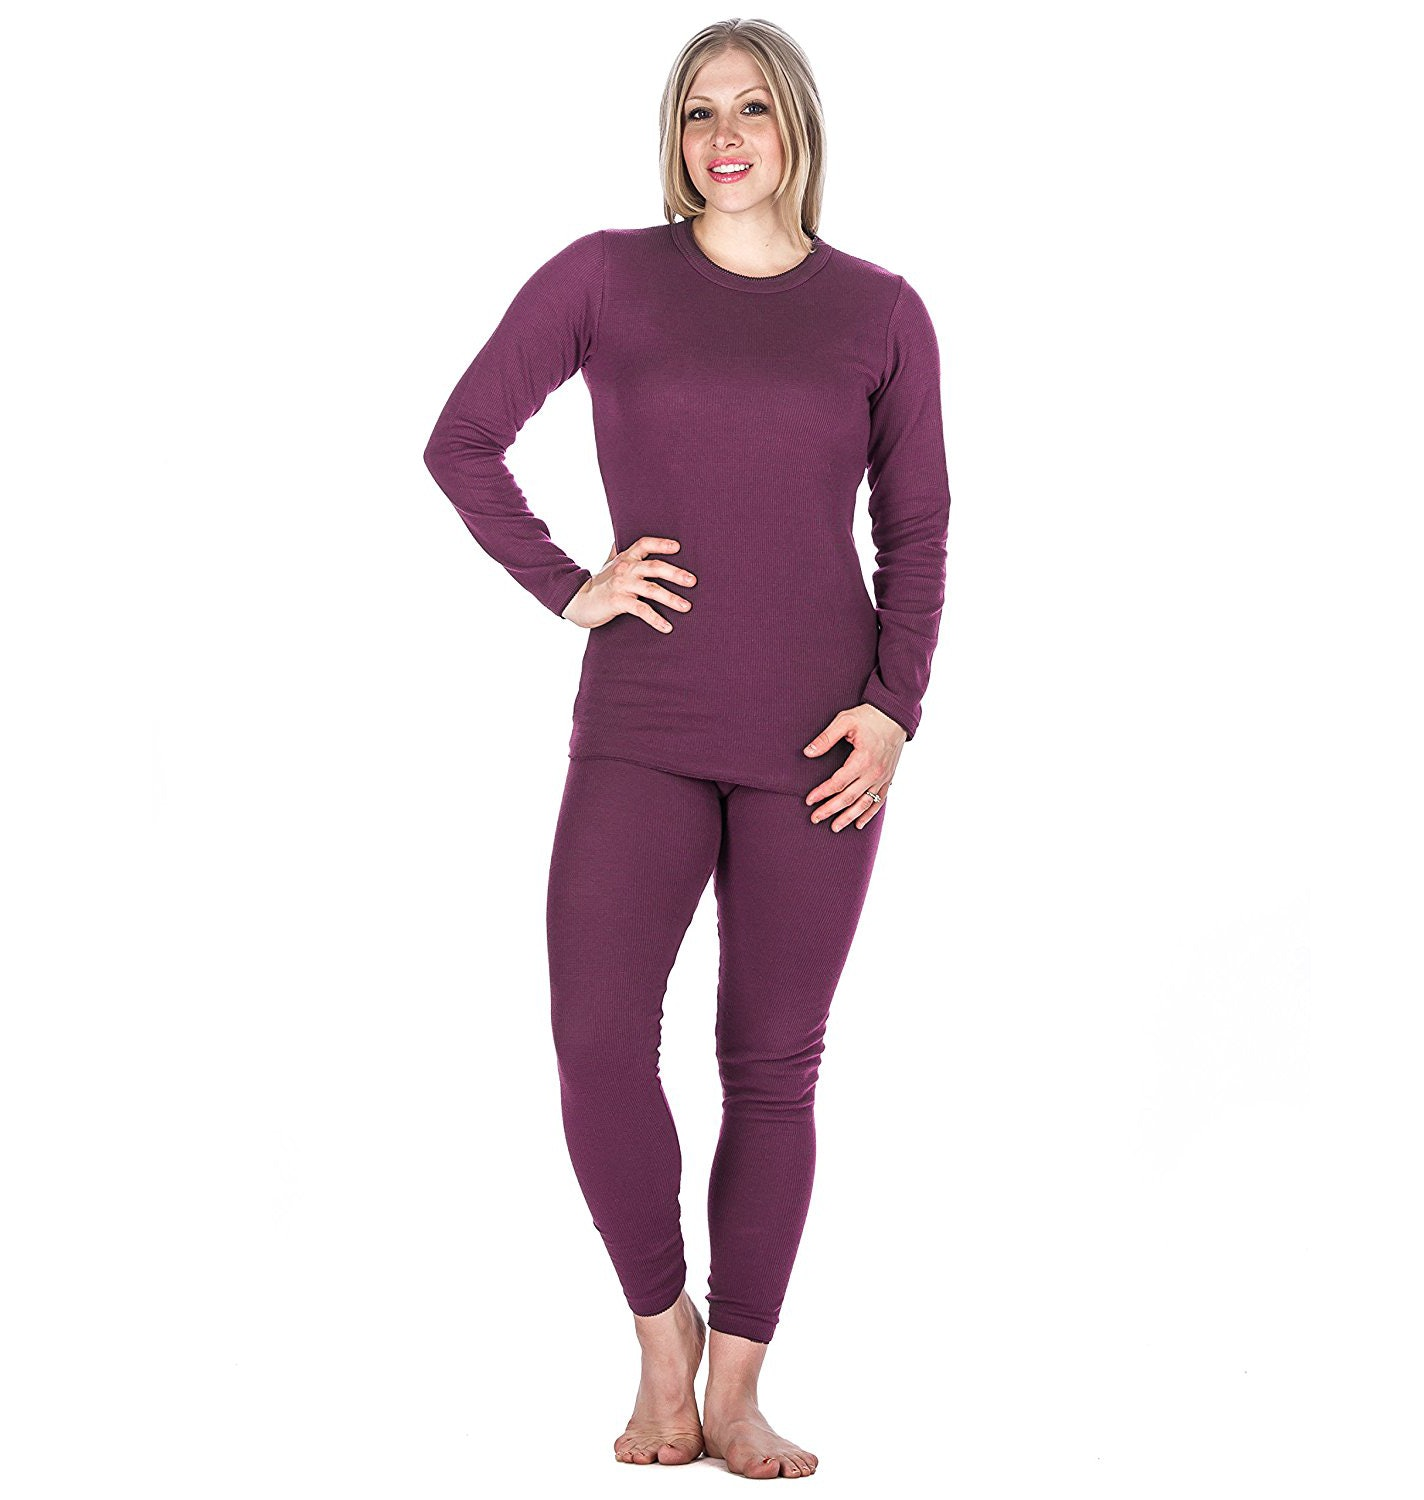 0806ff08d138 The 7 Best Thermal Underwear For Women